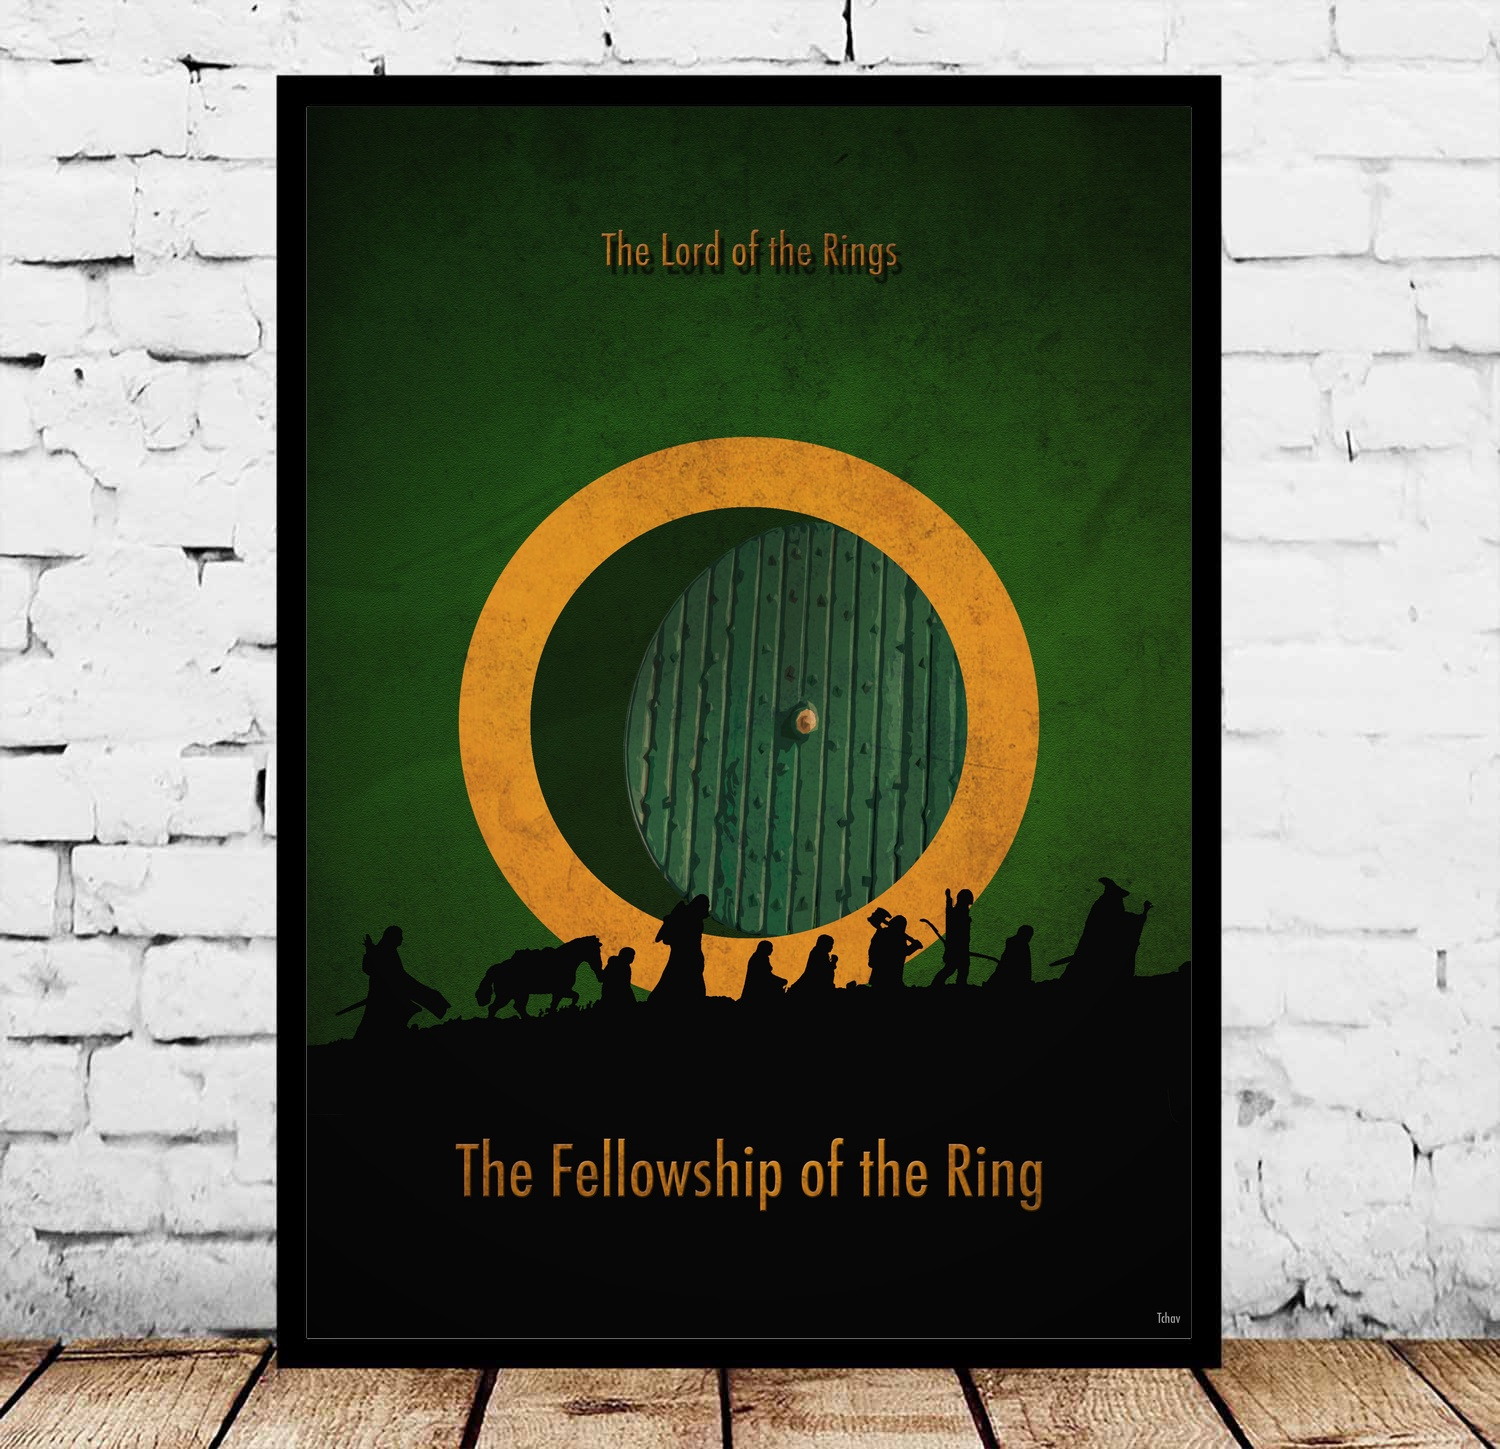 the lord of rings Movie Poster Canvas Painting image